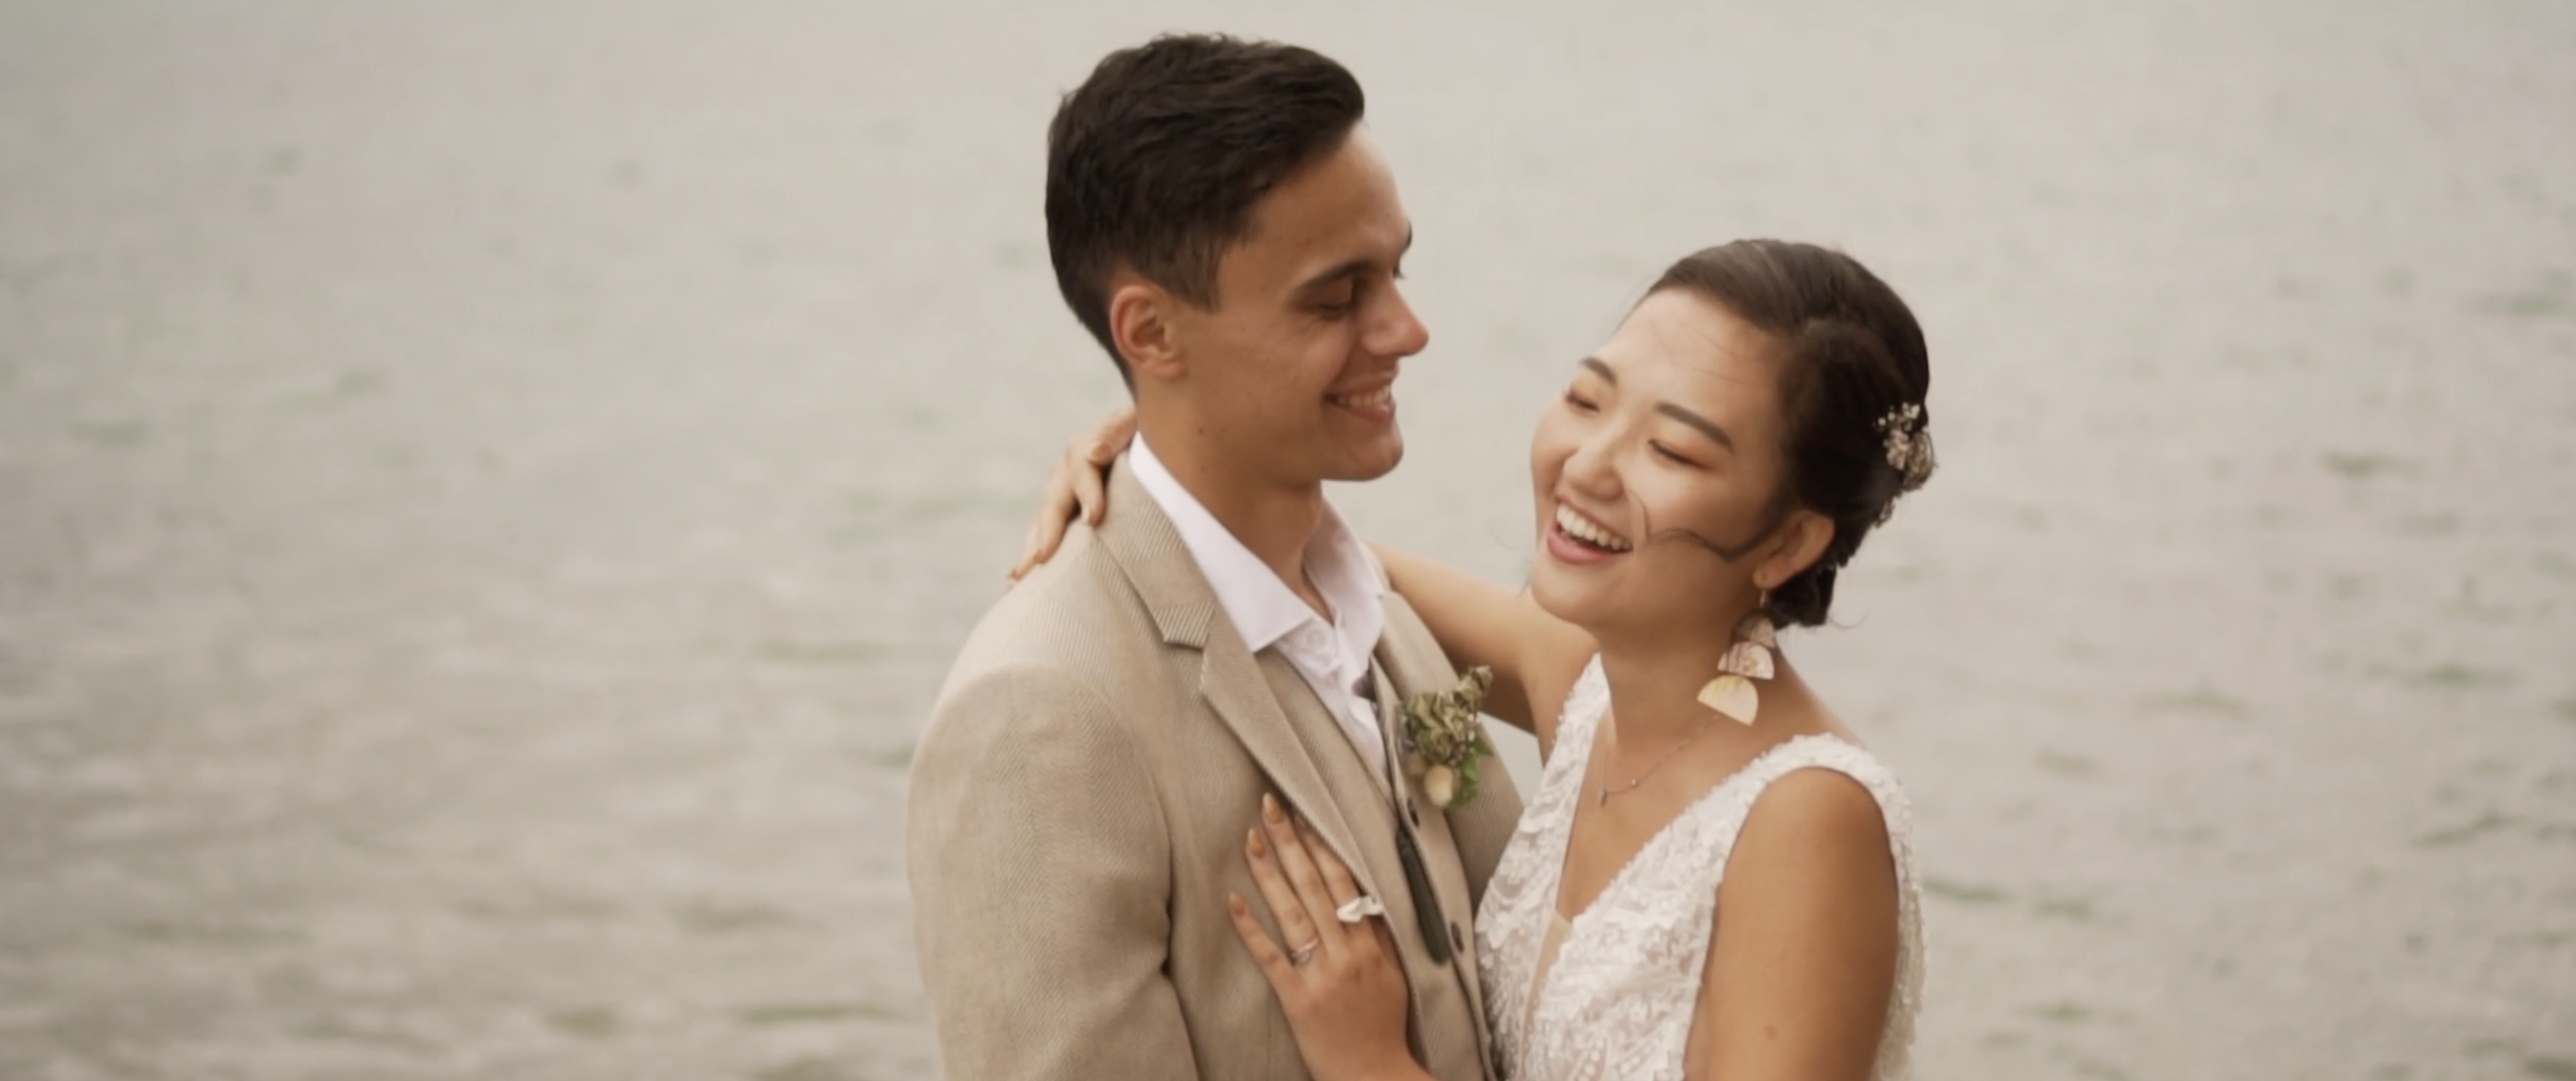 Cindy + George | Auckland, New Zealand | Outram Hall